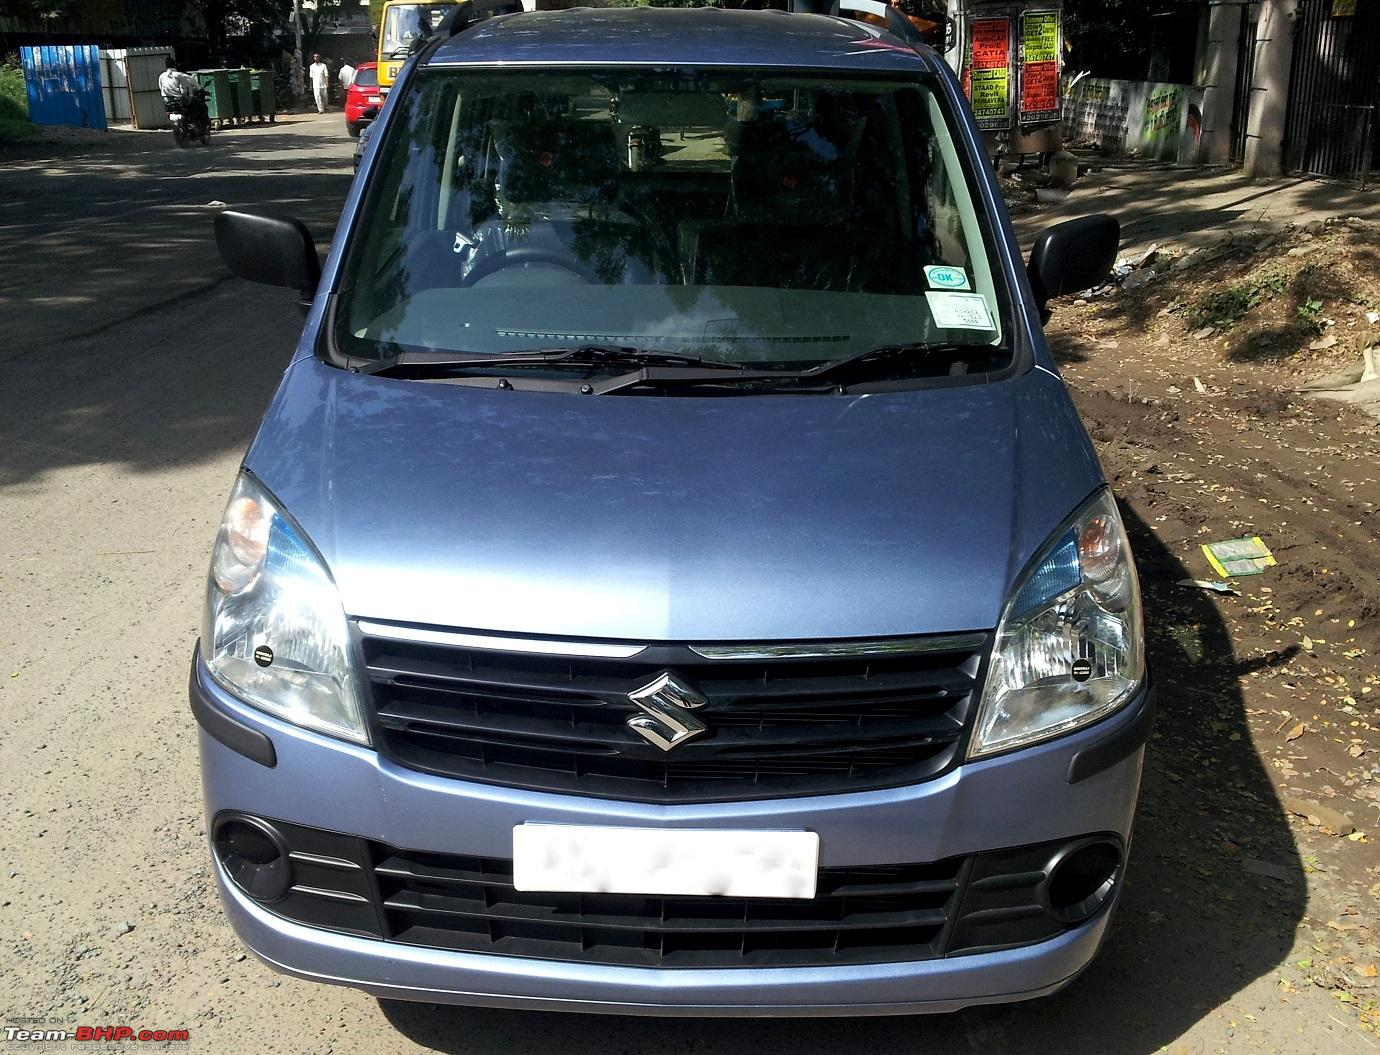 Maruti wagonr lxi selection purchase and review front view_smaller jpg